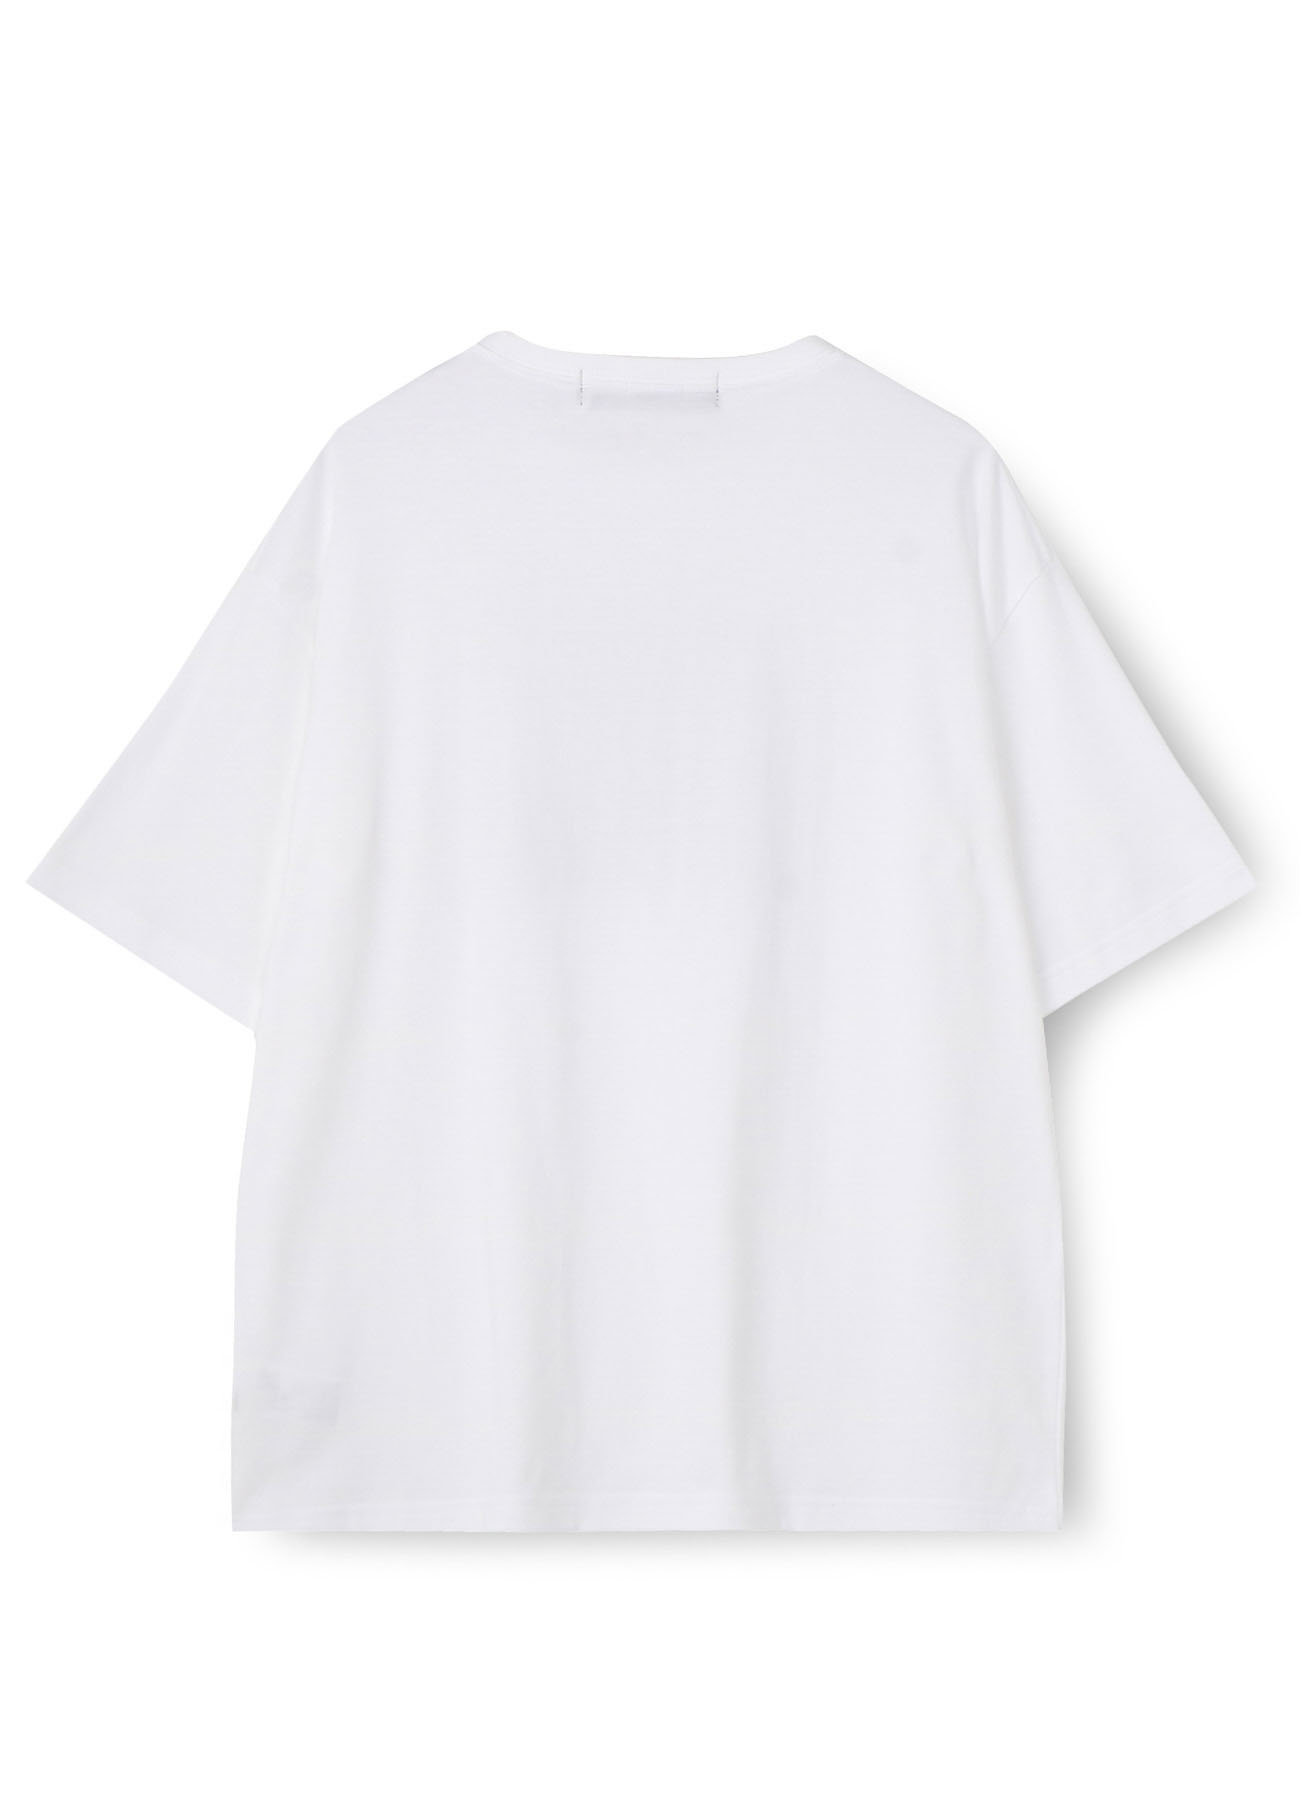 5.0oz cotton Jersey Patchwork T C